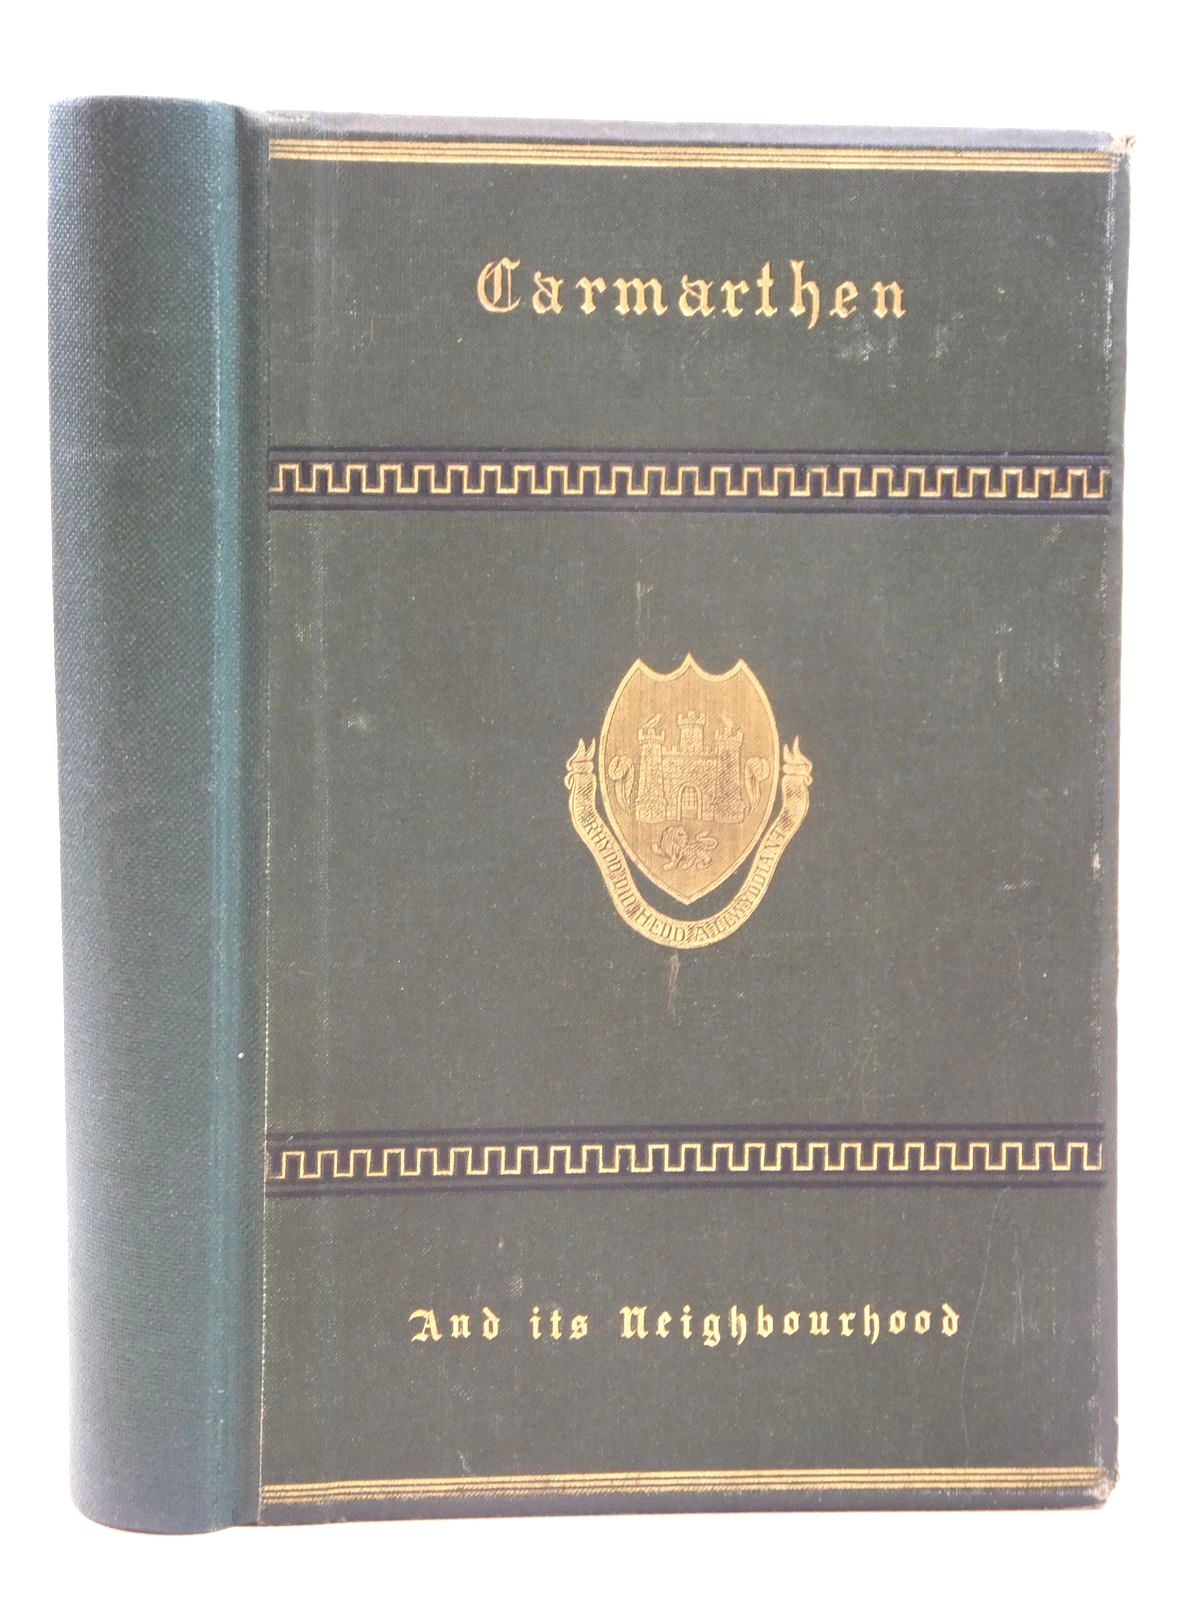 Photo of A GUIDE TO CARMARTHEN AND ITS NEIGHBOURHOOD written by Spurrell, William published by William Spurrell (STOCK CODE: 2121775)  for sale by Stella & Rose's Books